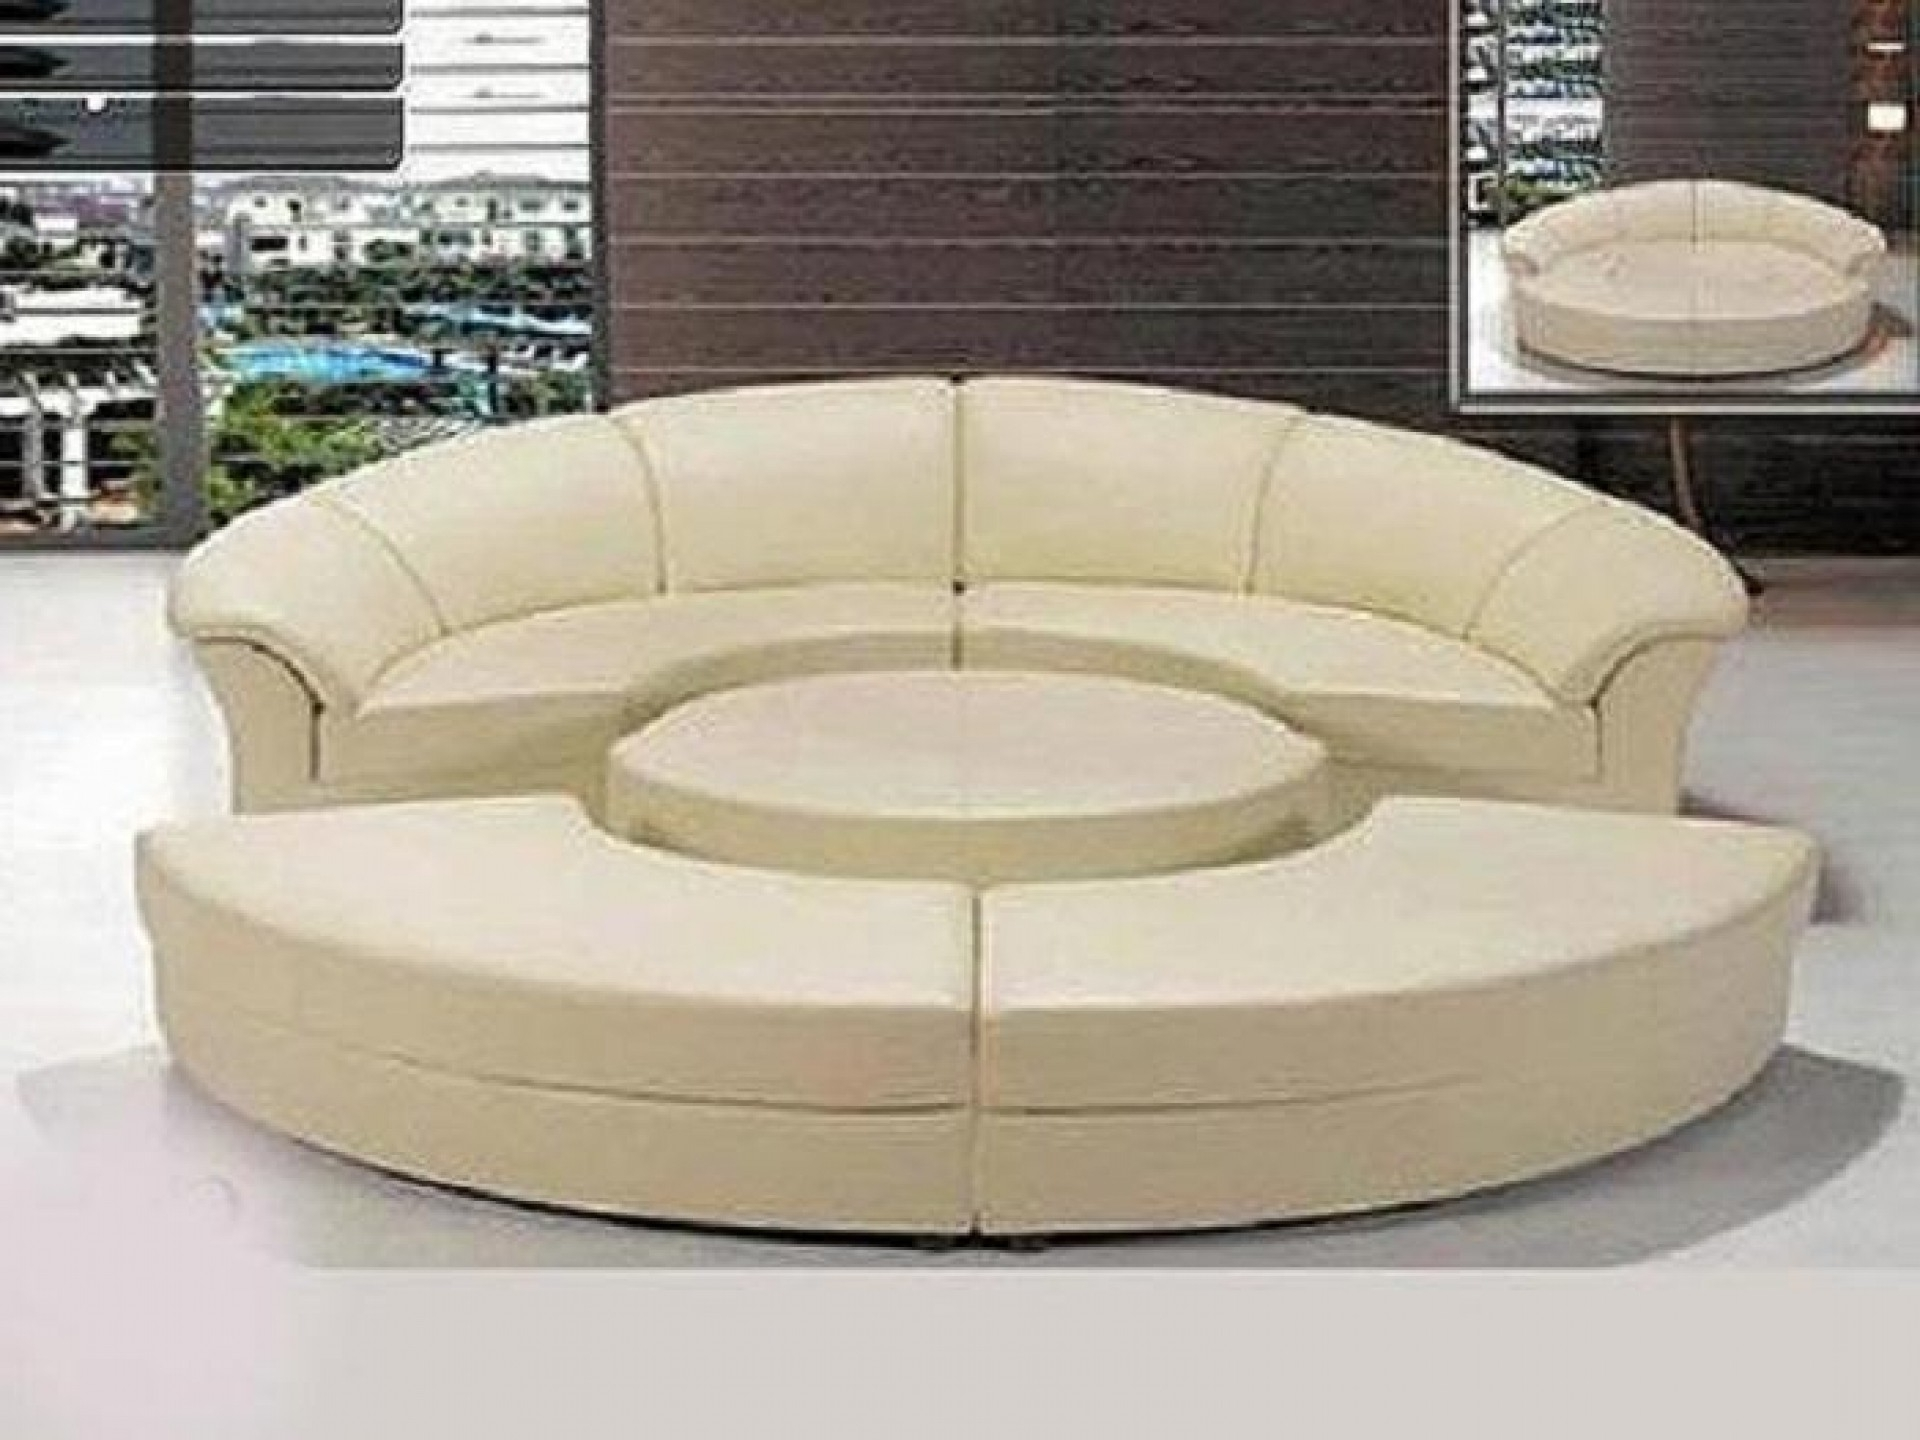 Affordable Tufted Sofas With Current Cool Cheap Sofas For Sale For Your Sofa Glamorous Round Sectional (View 7 of 15)